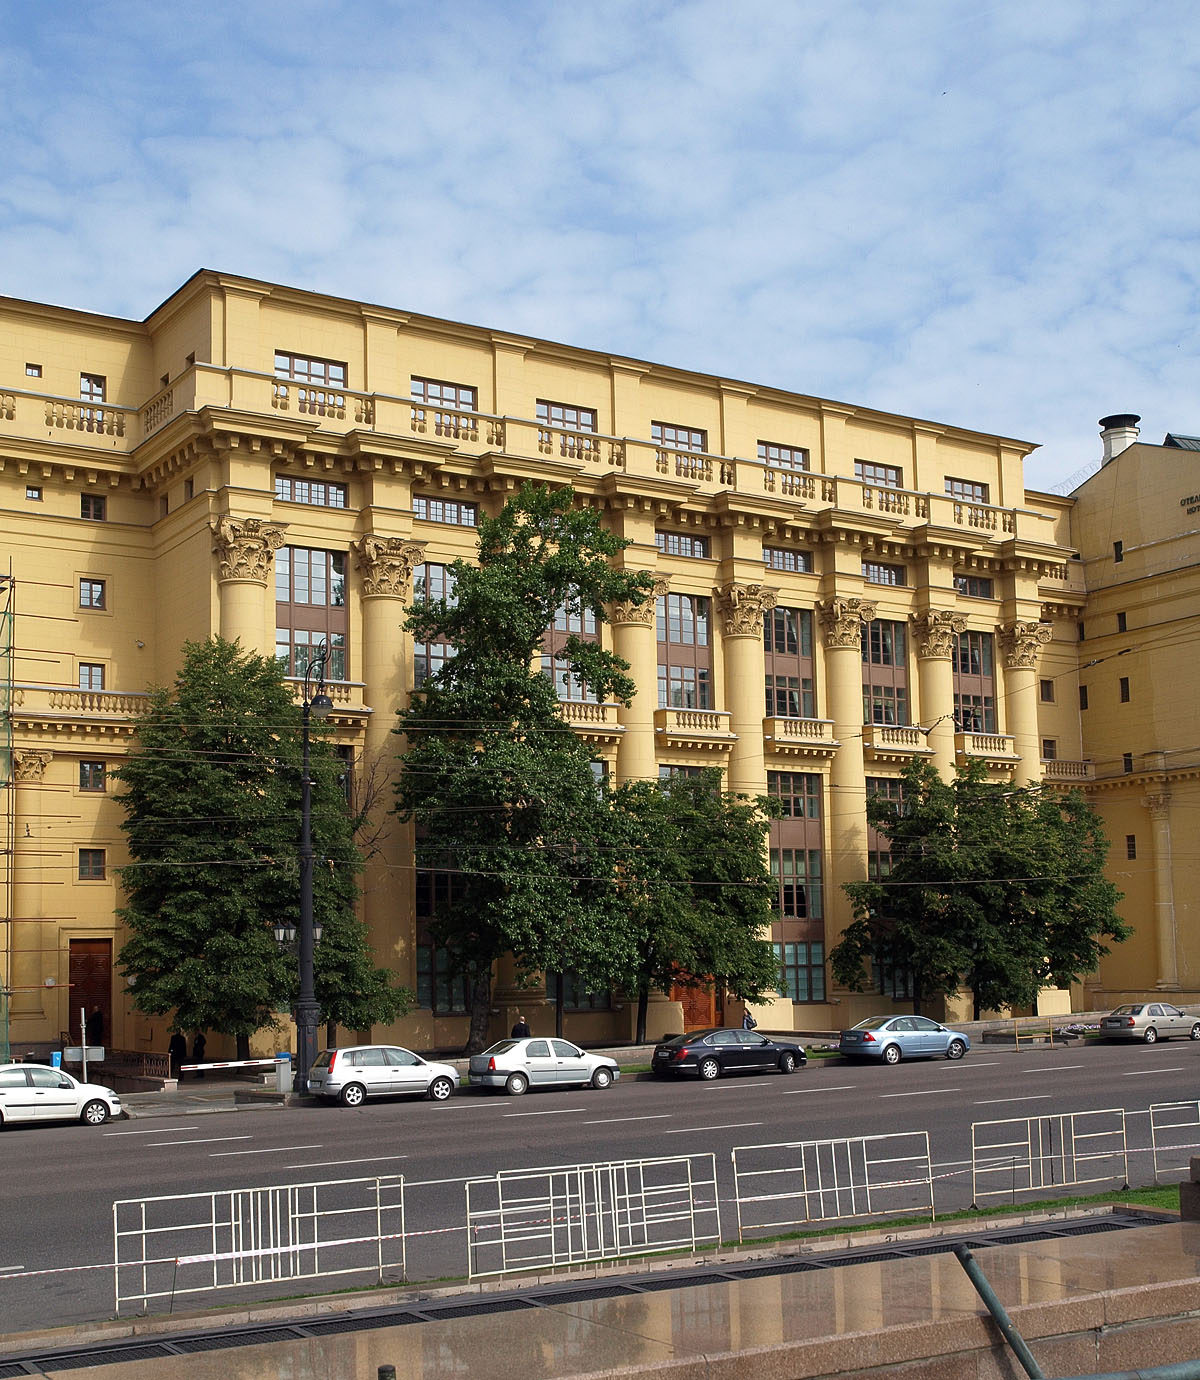 Stalinist architecture search for videos